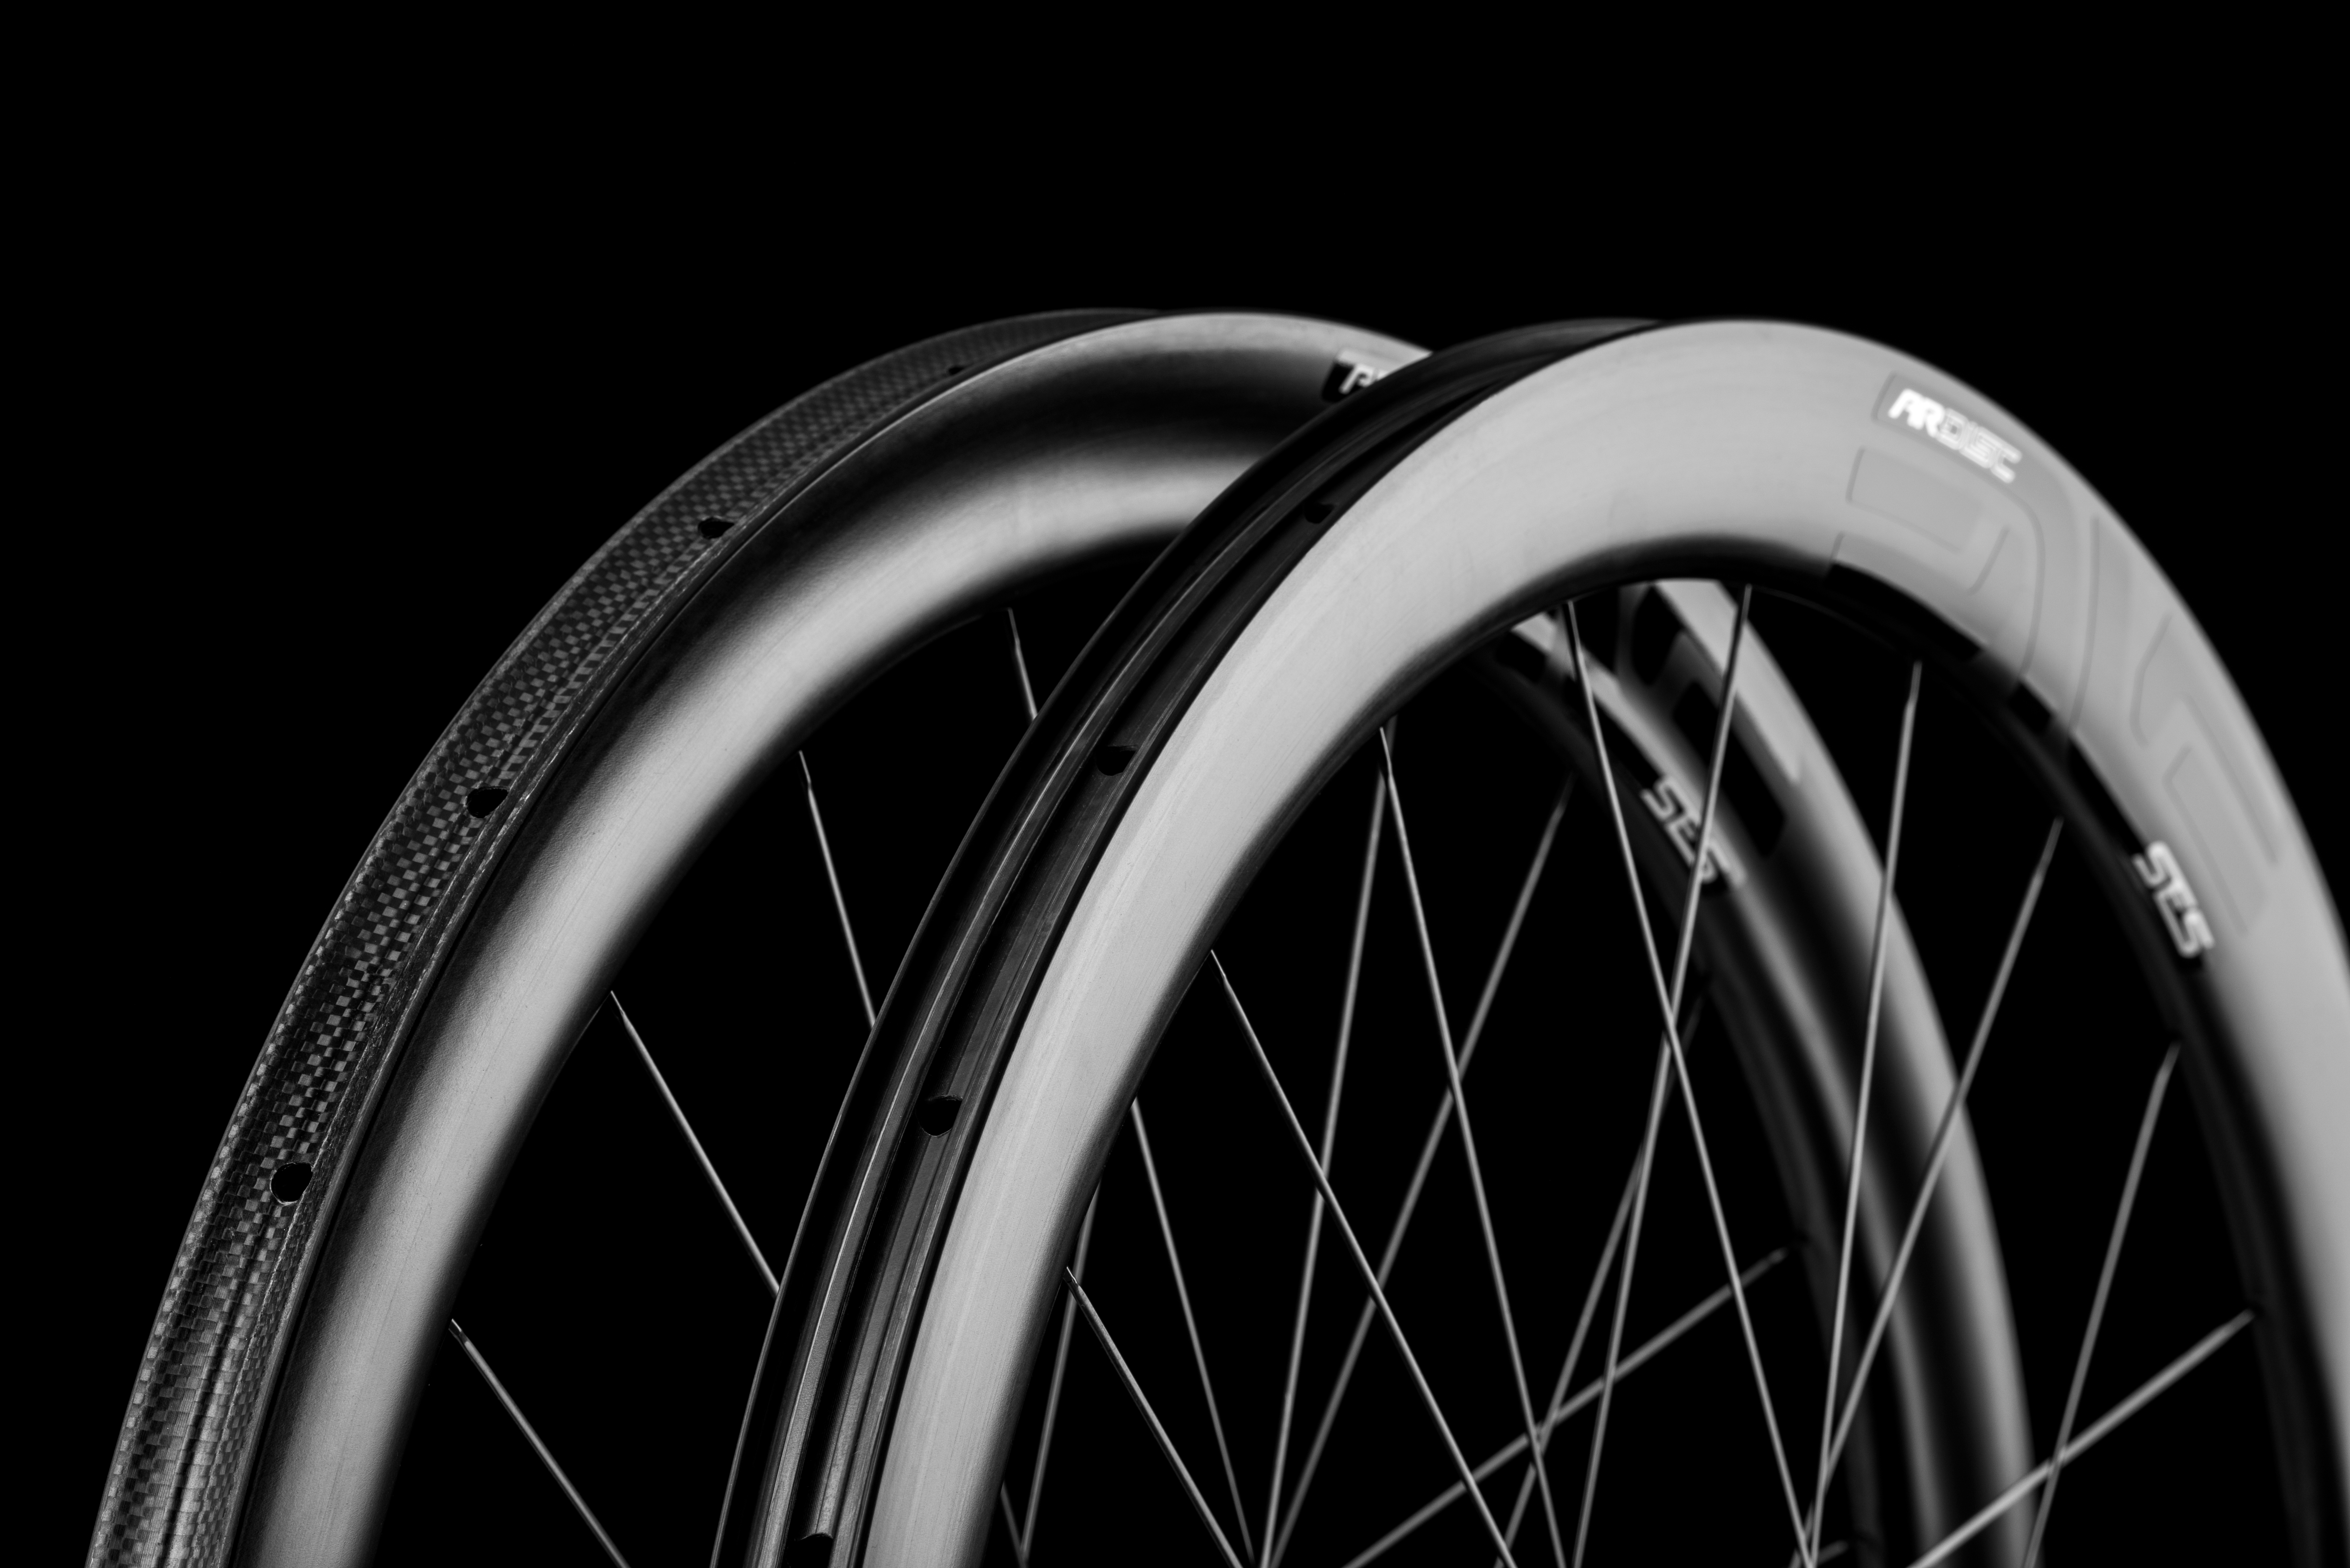 Nuove ruote Enve SES 4.5 AR disc